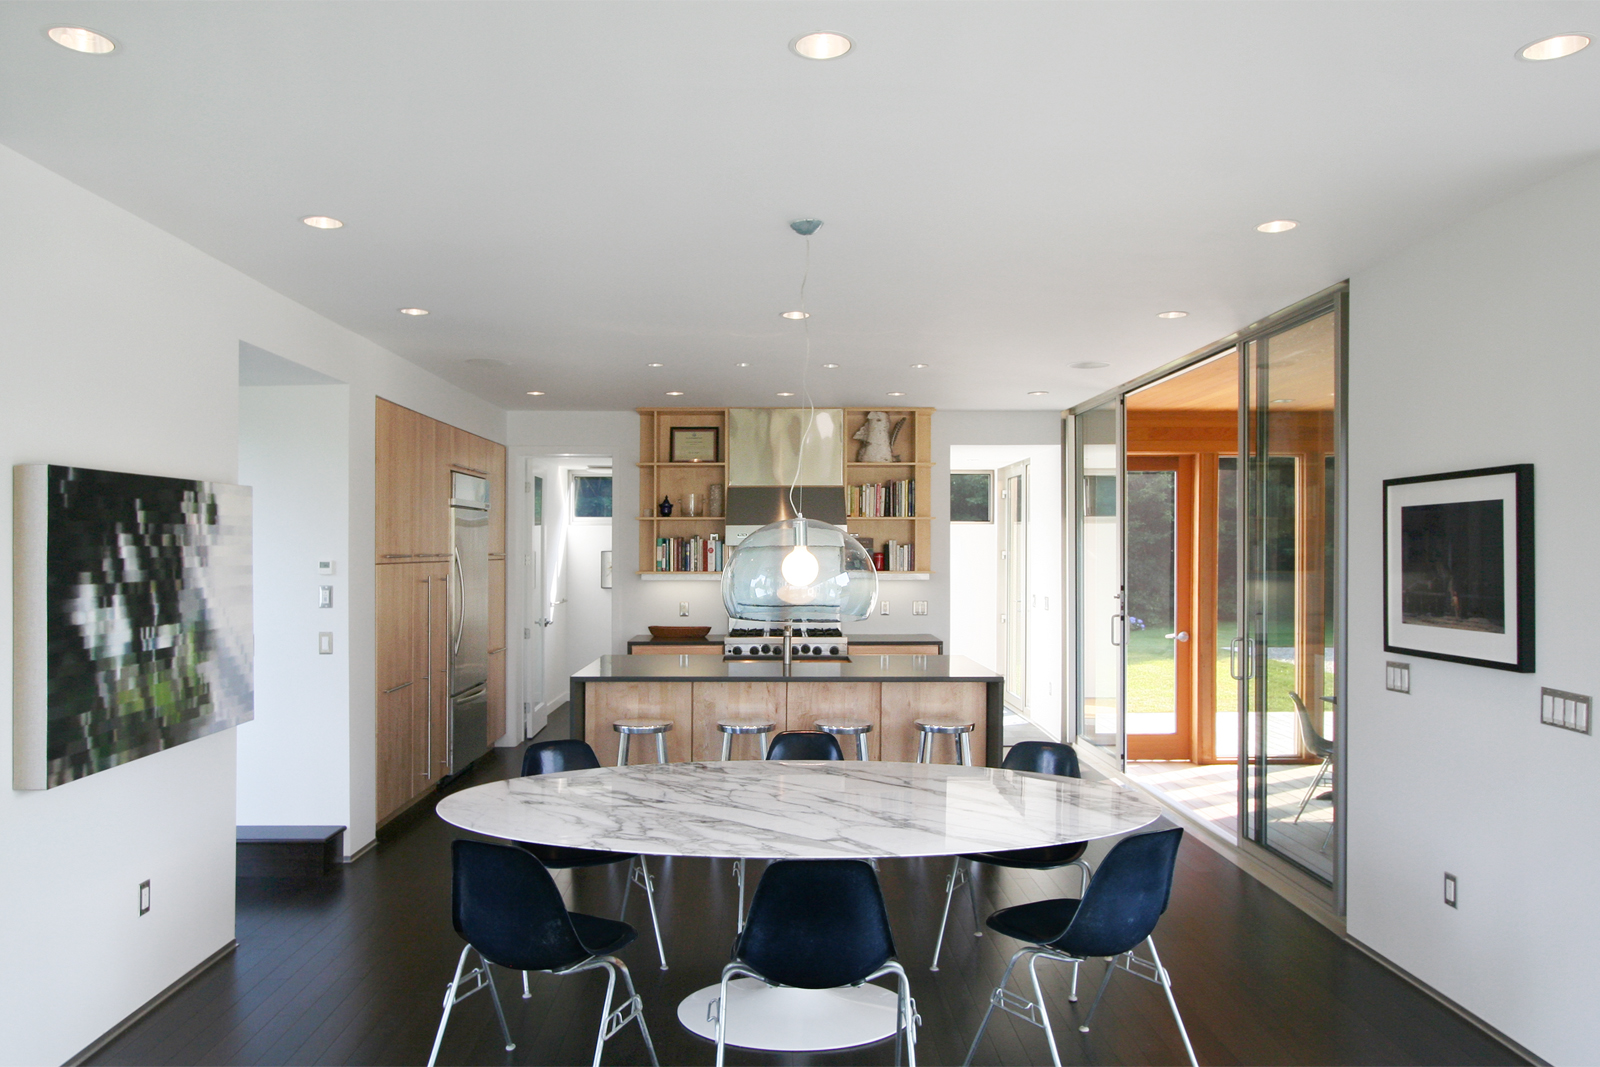 07-res4-resolution-4-architecture-modern-modular-home-prefab-sunset-ridge-house-interior-kitchen-dining.jpg